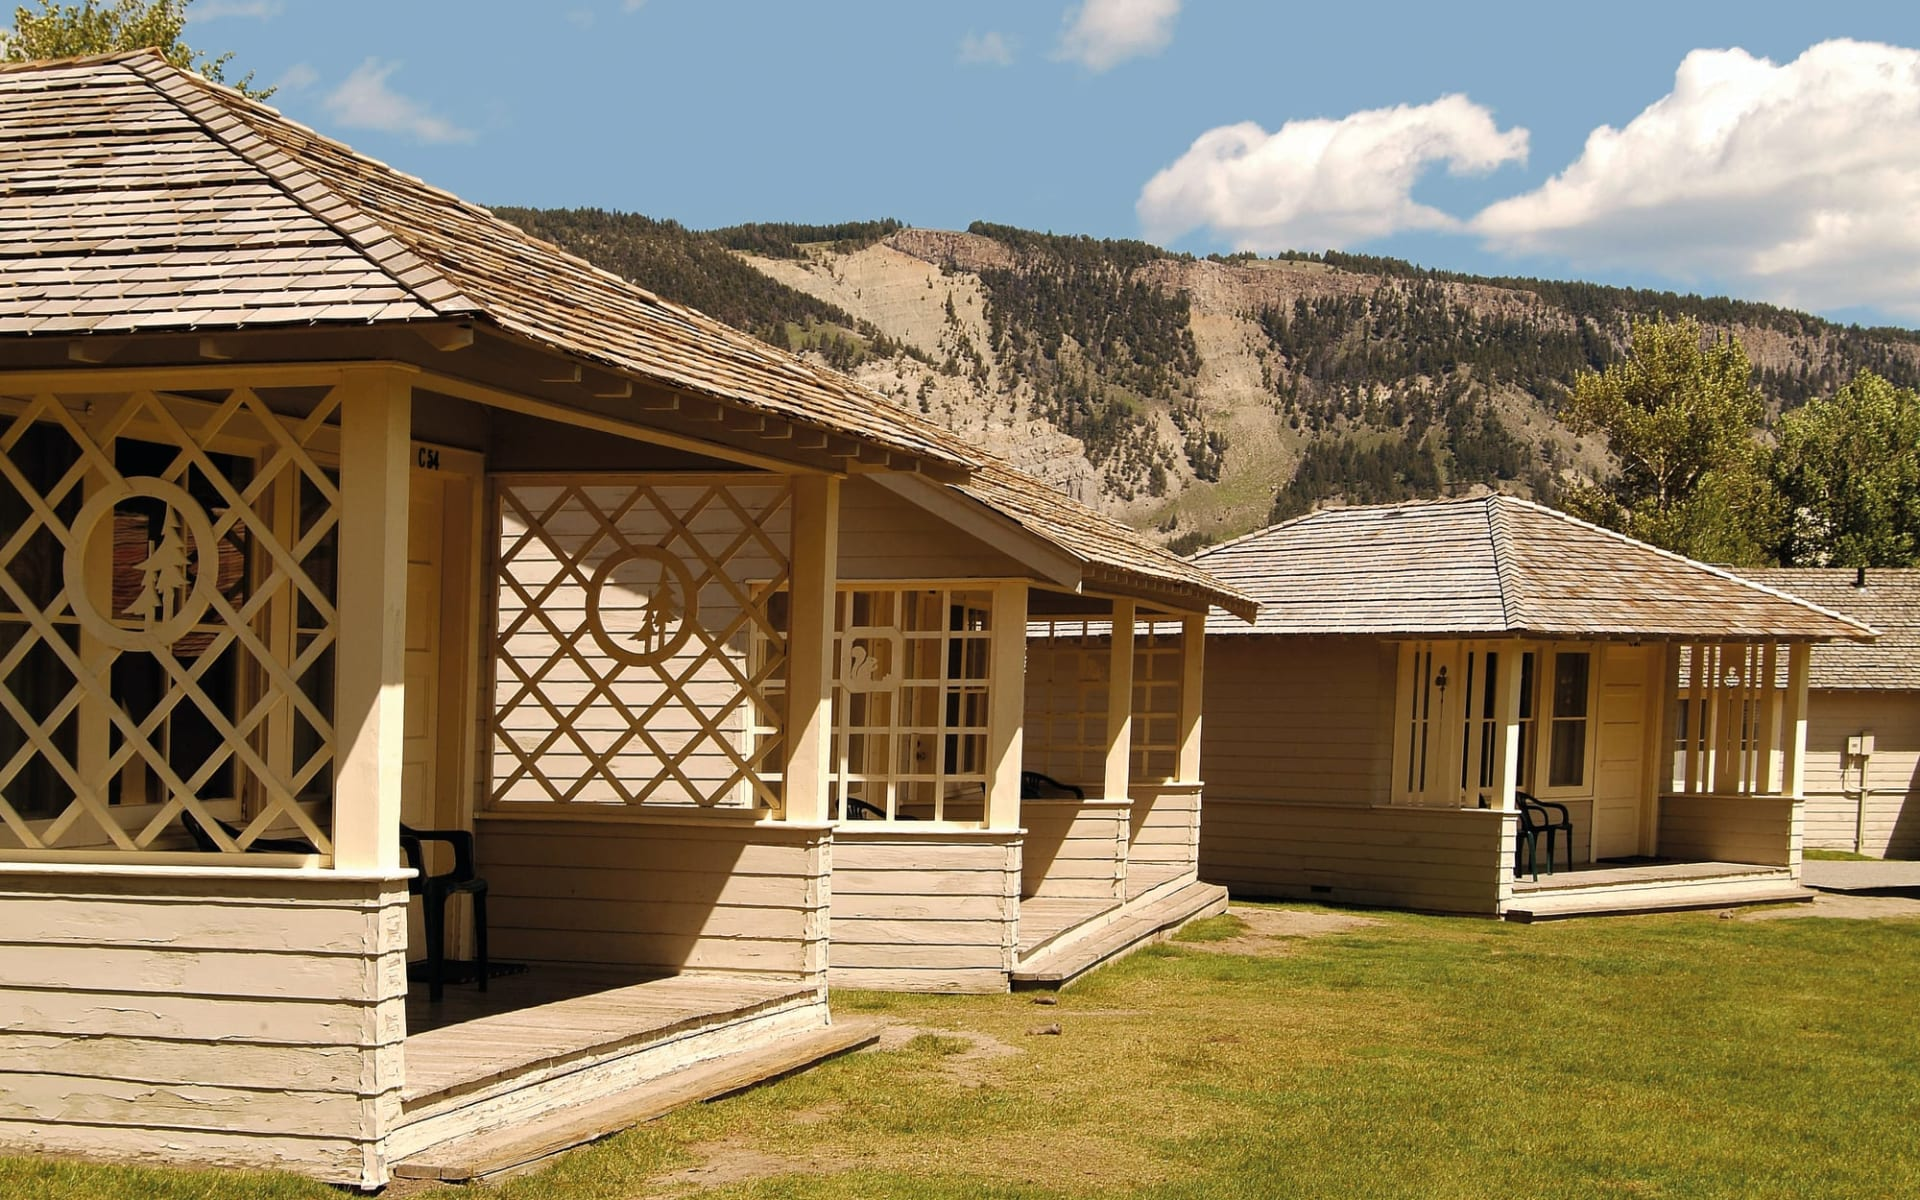 Mammoth Hot Springs Hotel & Cabins in Yellowstone National Park:  Mammoth Hot Springs Hotel Cabin Exterior 1